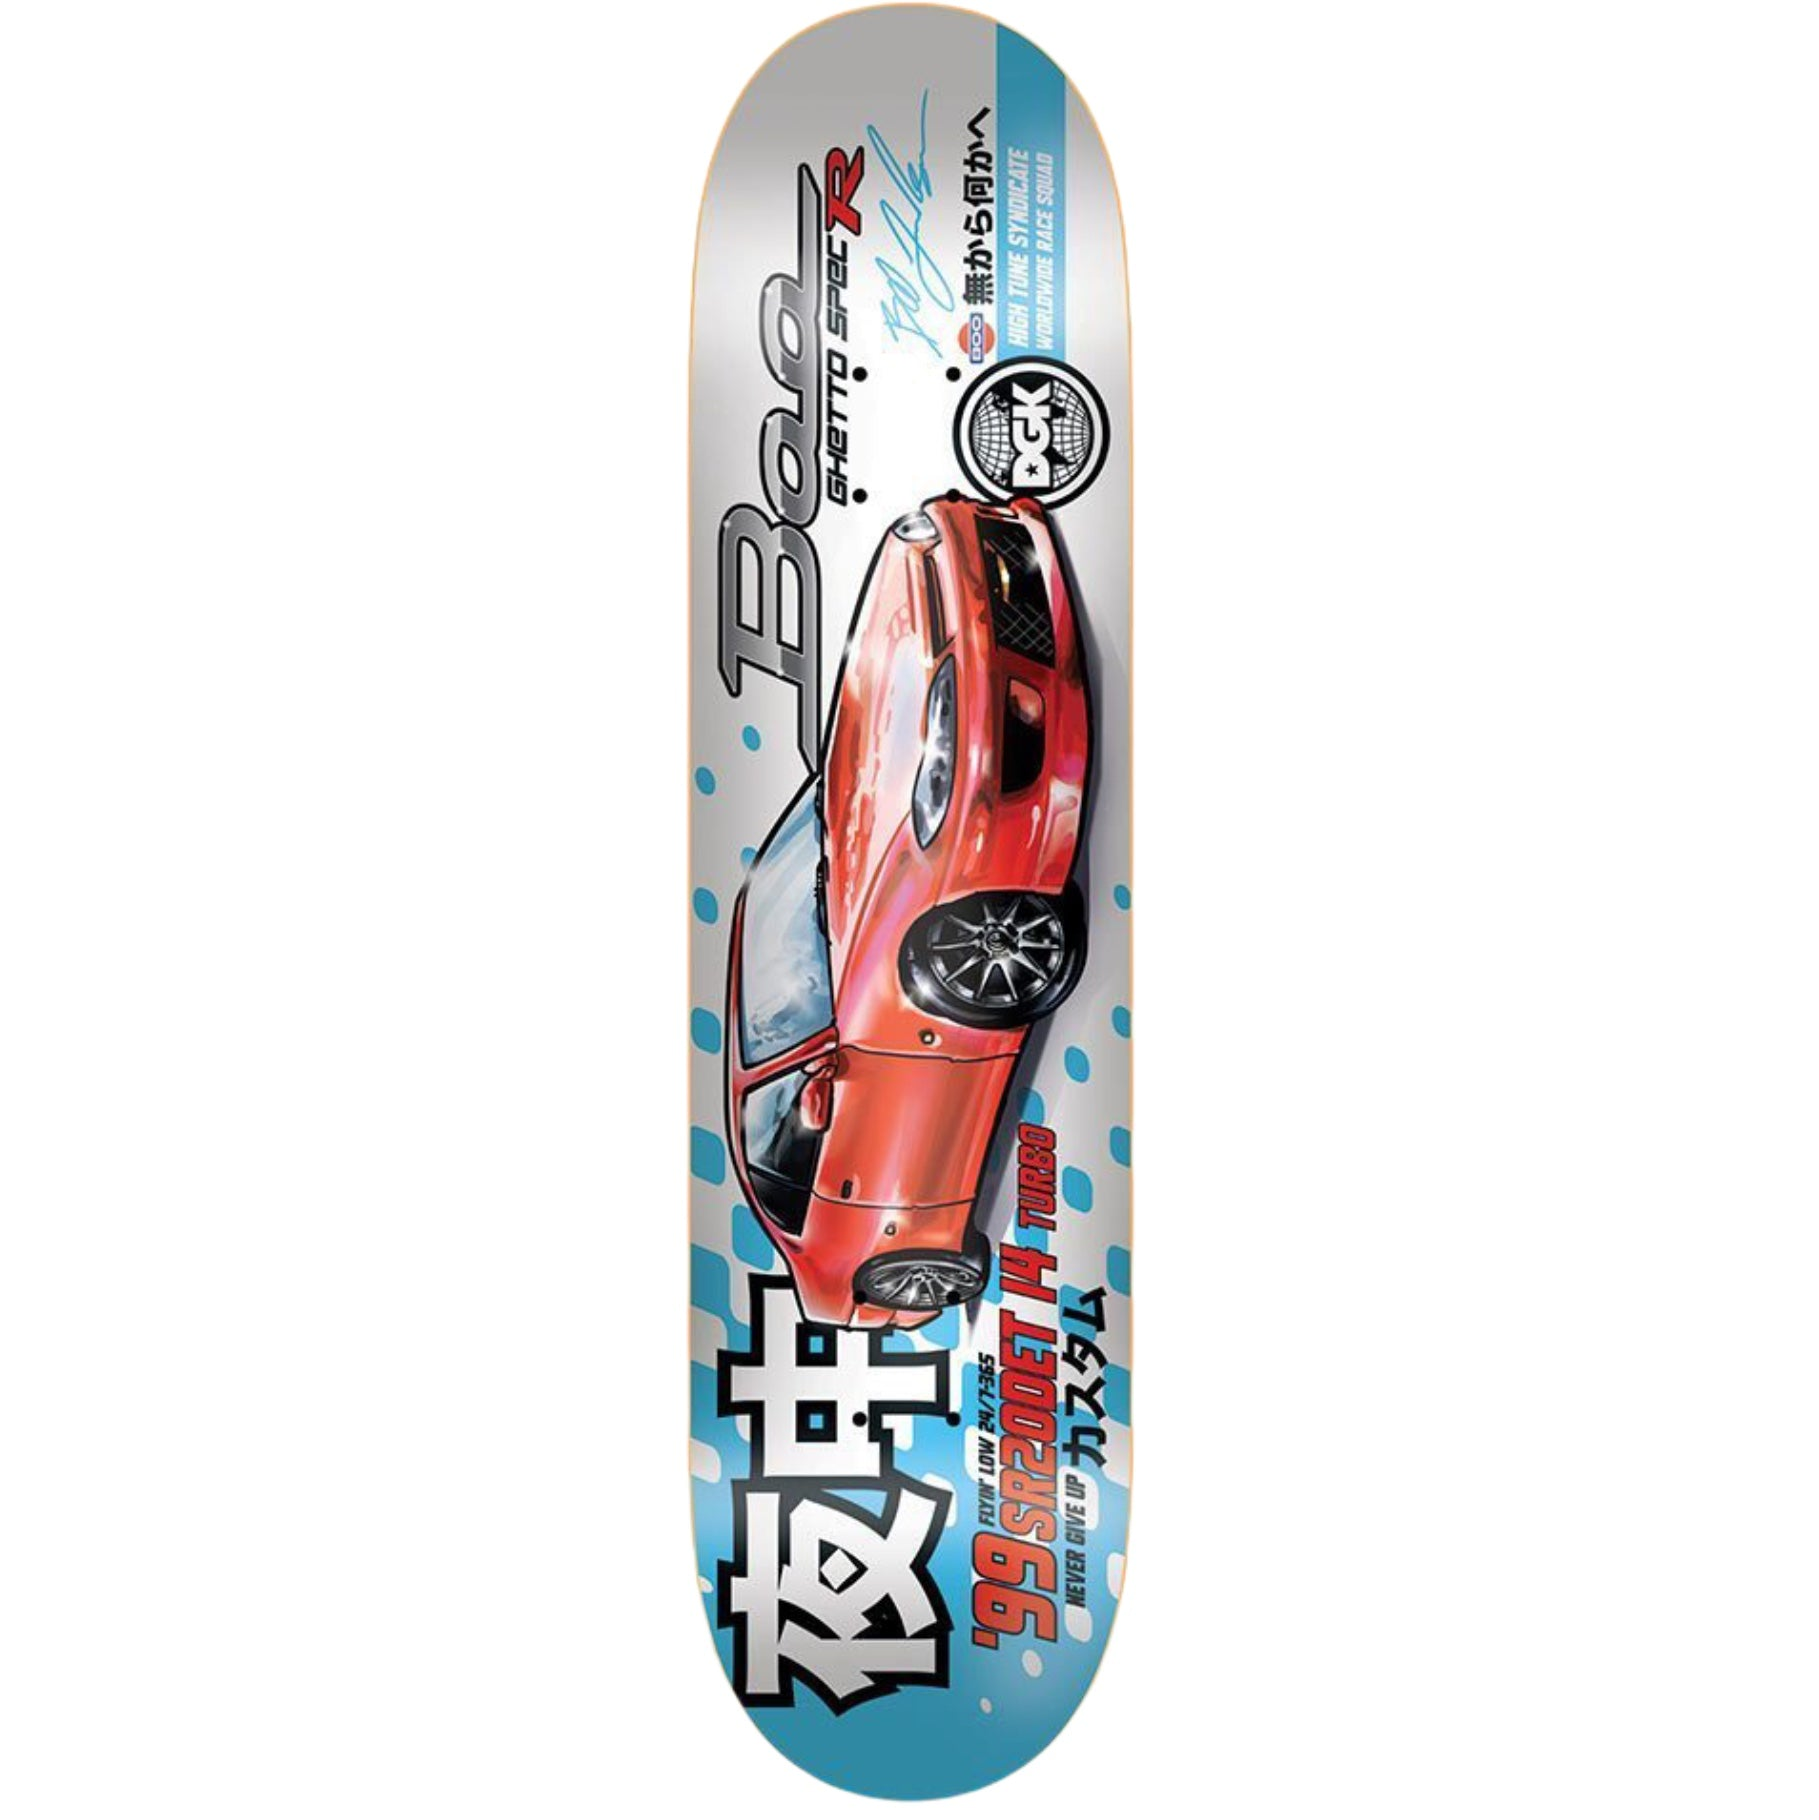 DGK Tuner Boo Johnson Deck 7.8""